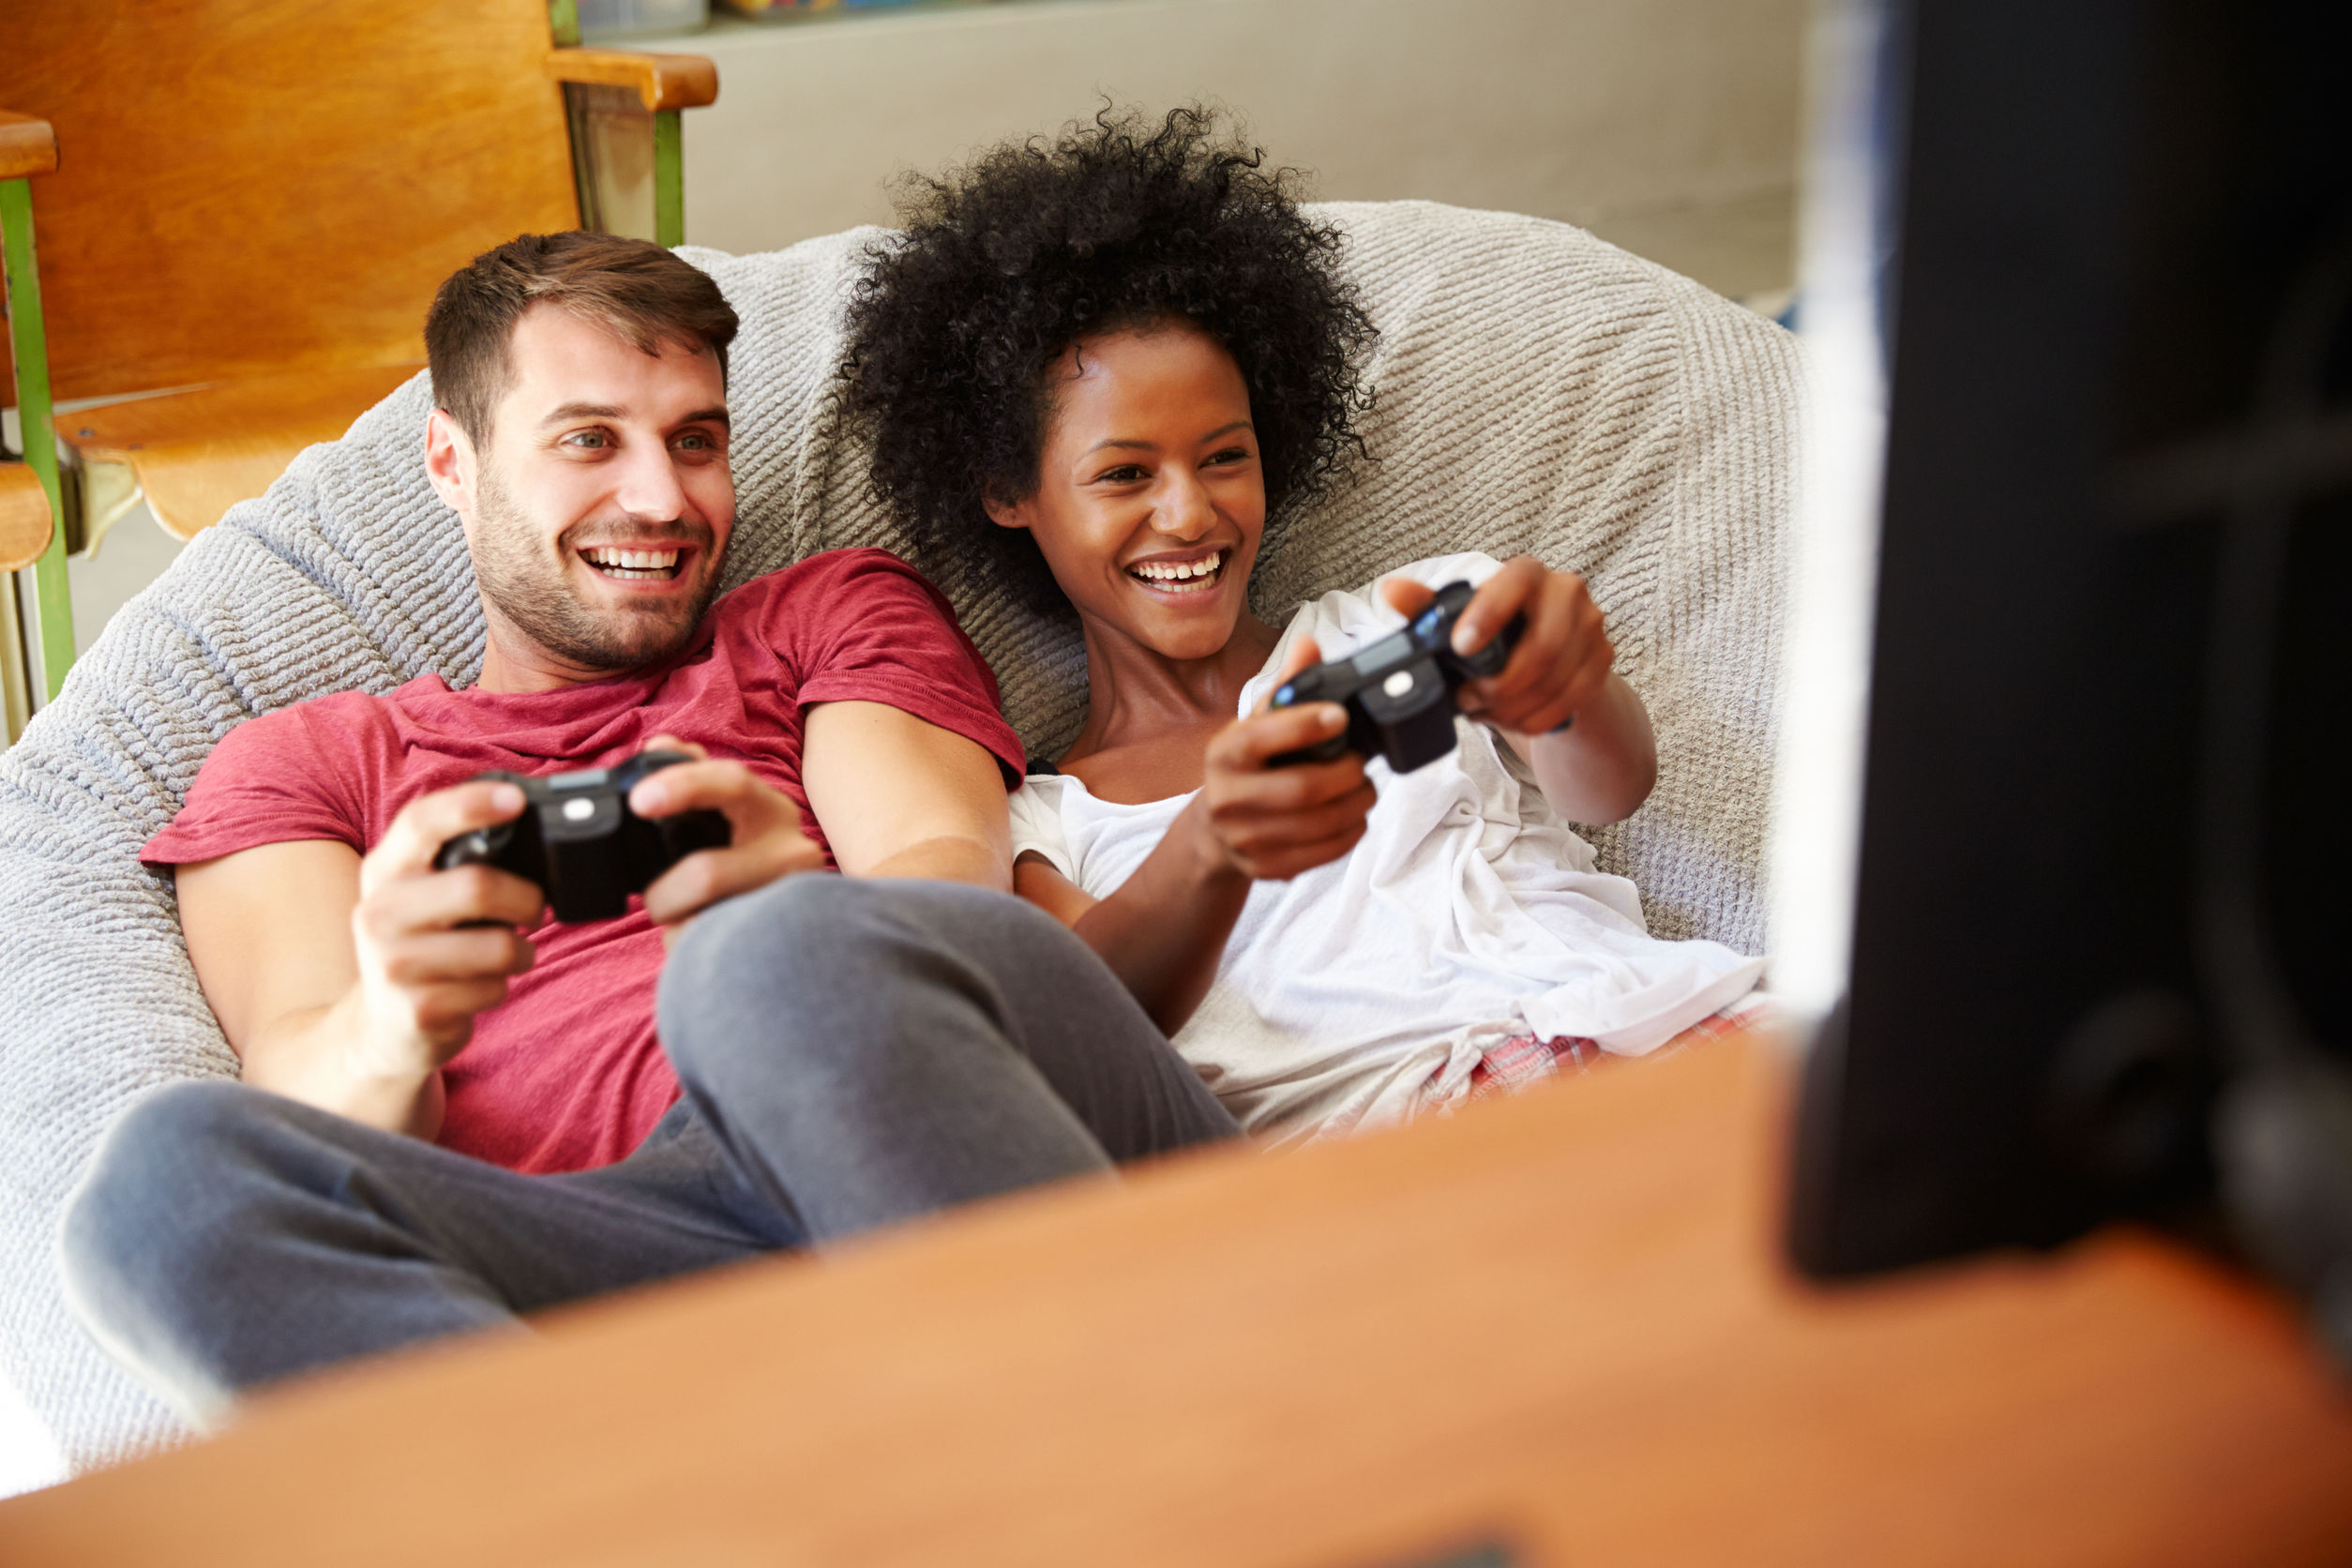 Young couple in pajamas playing together on Xbox One